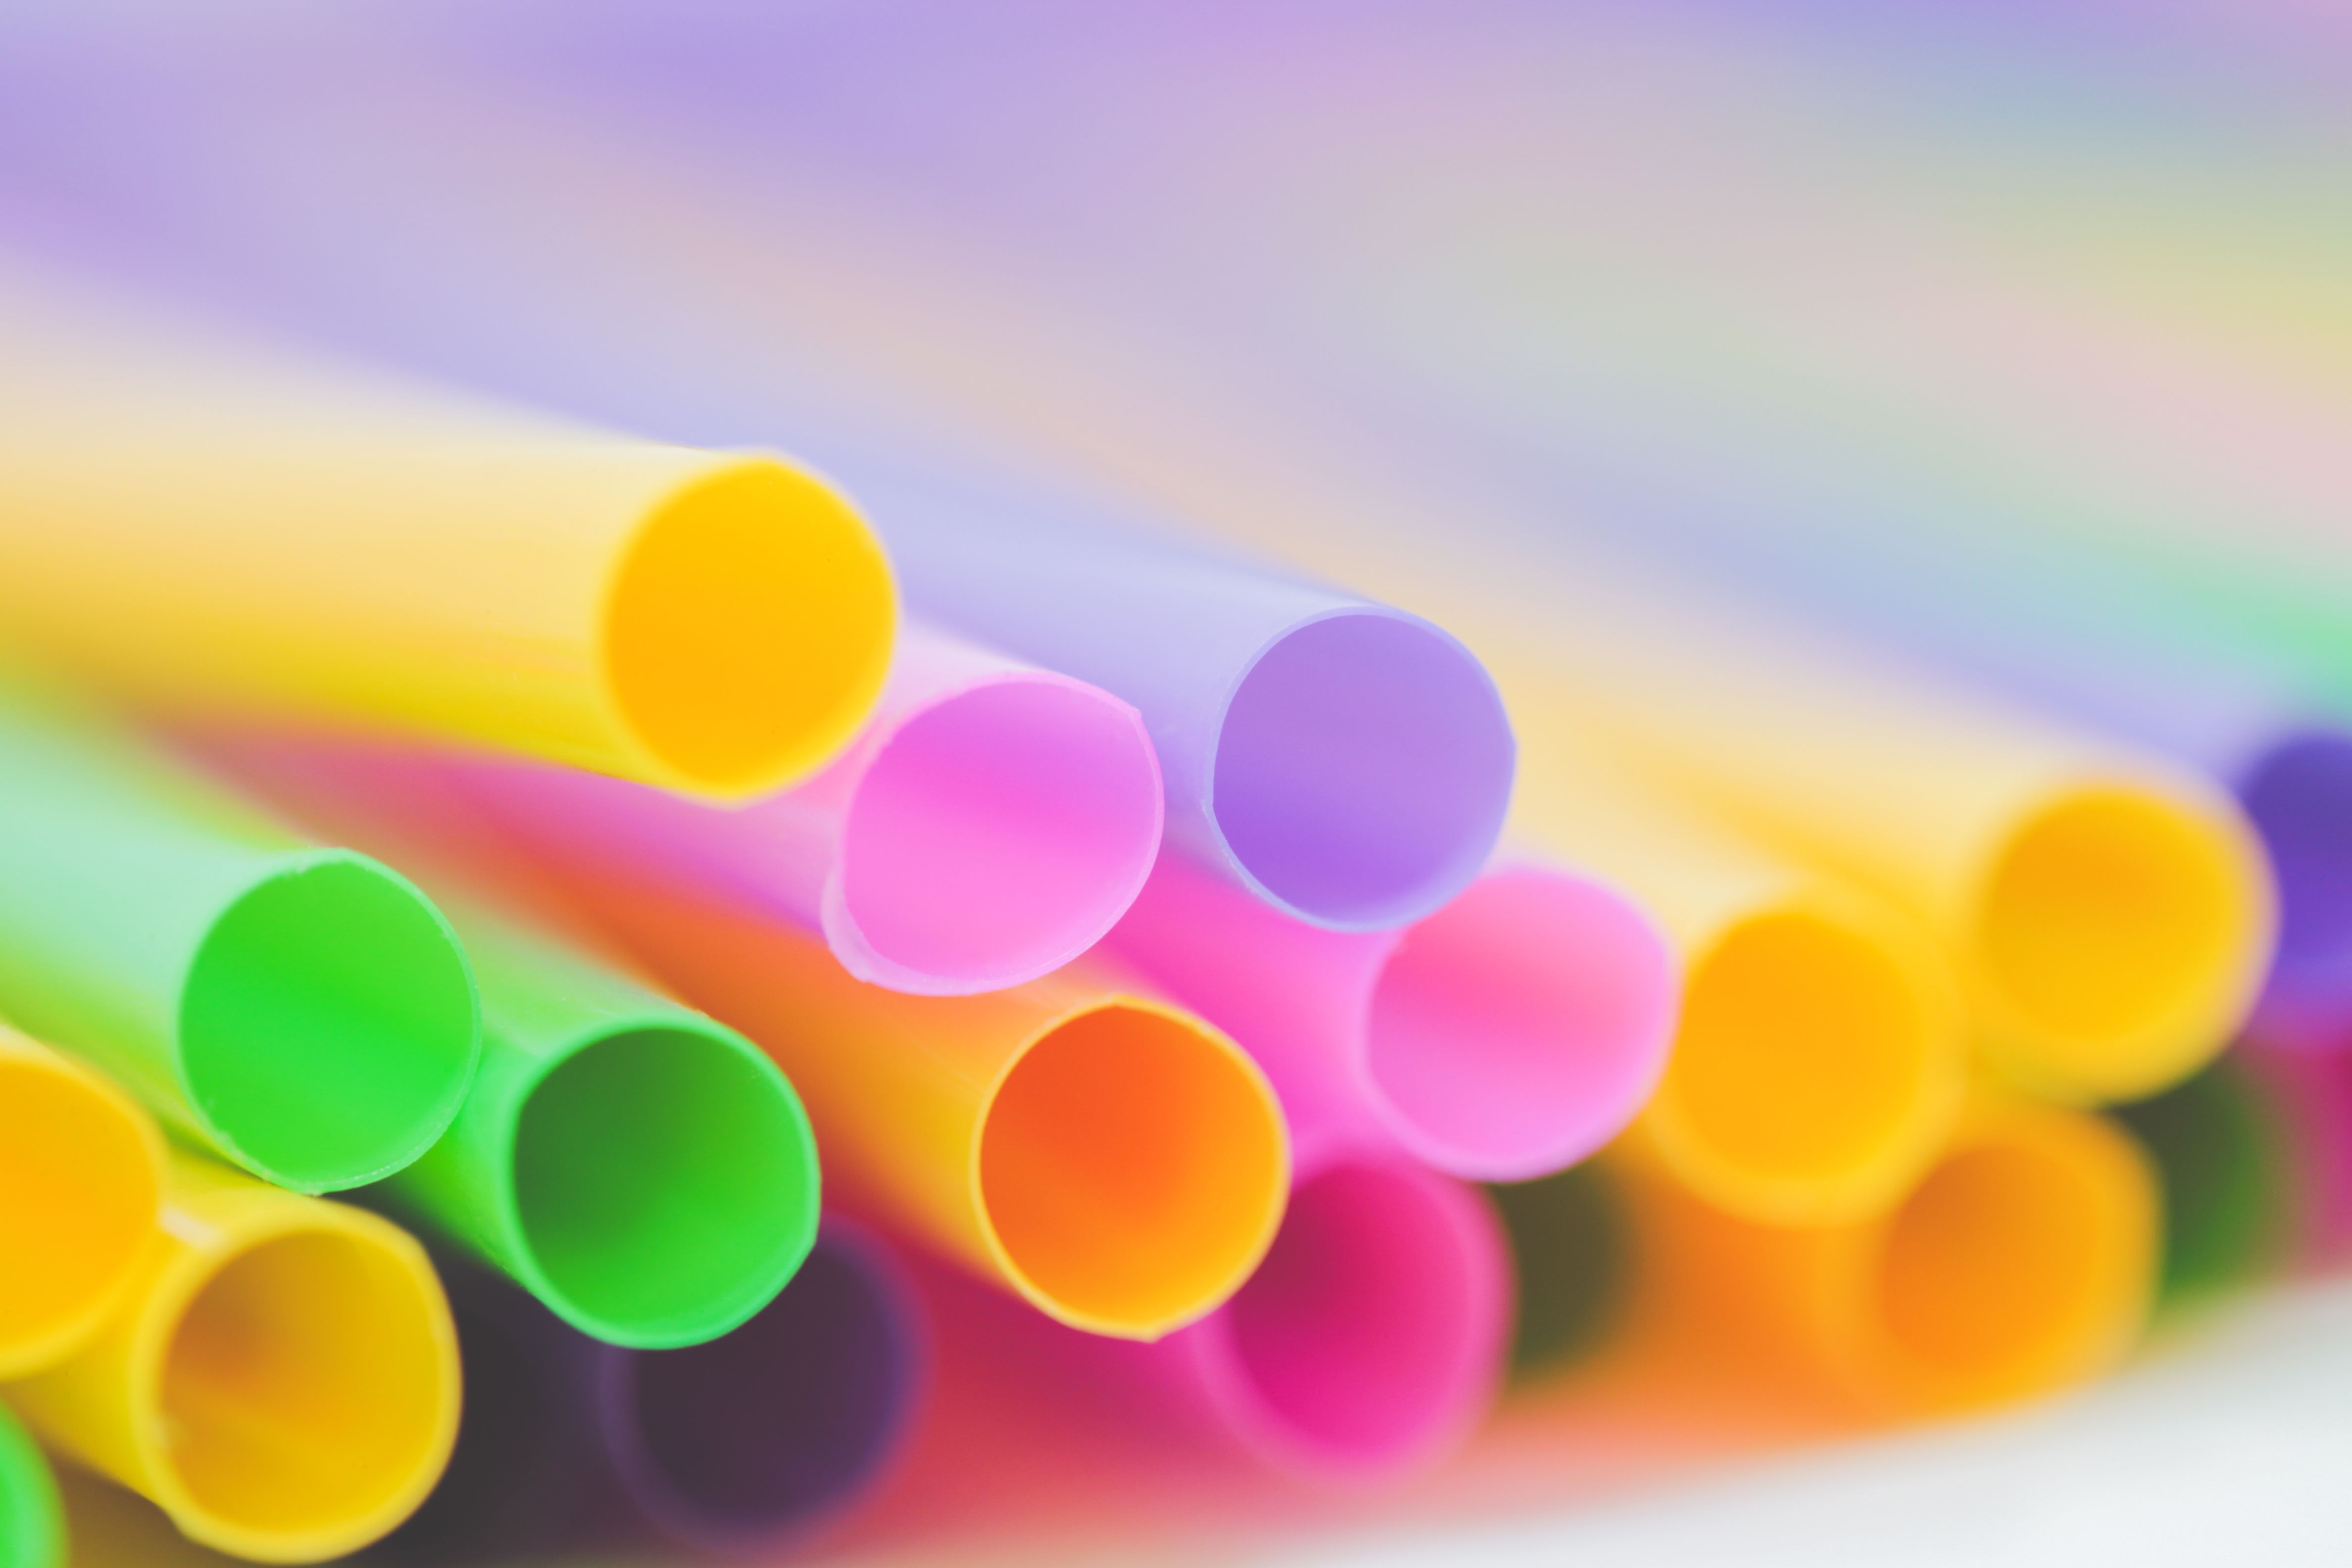 England will ban plastic stirrers, straws and cotton swabs from 2020